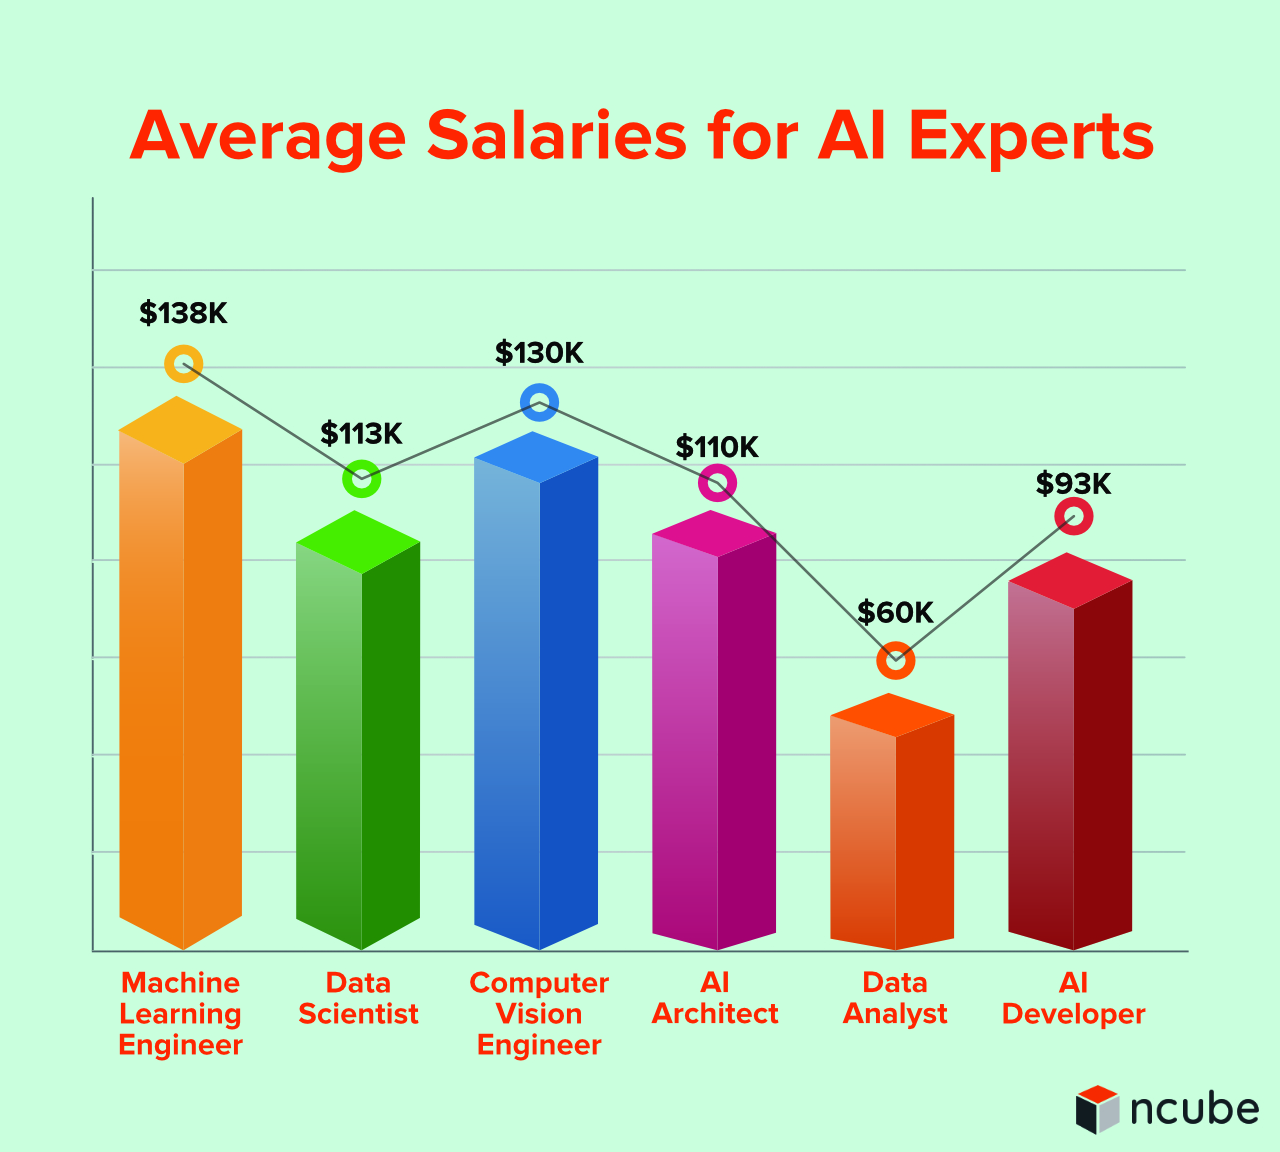 Average Salaries for AI Experts